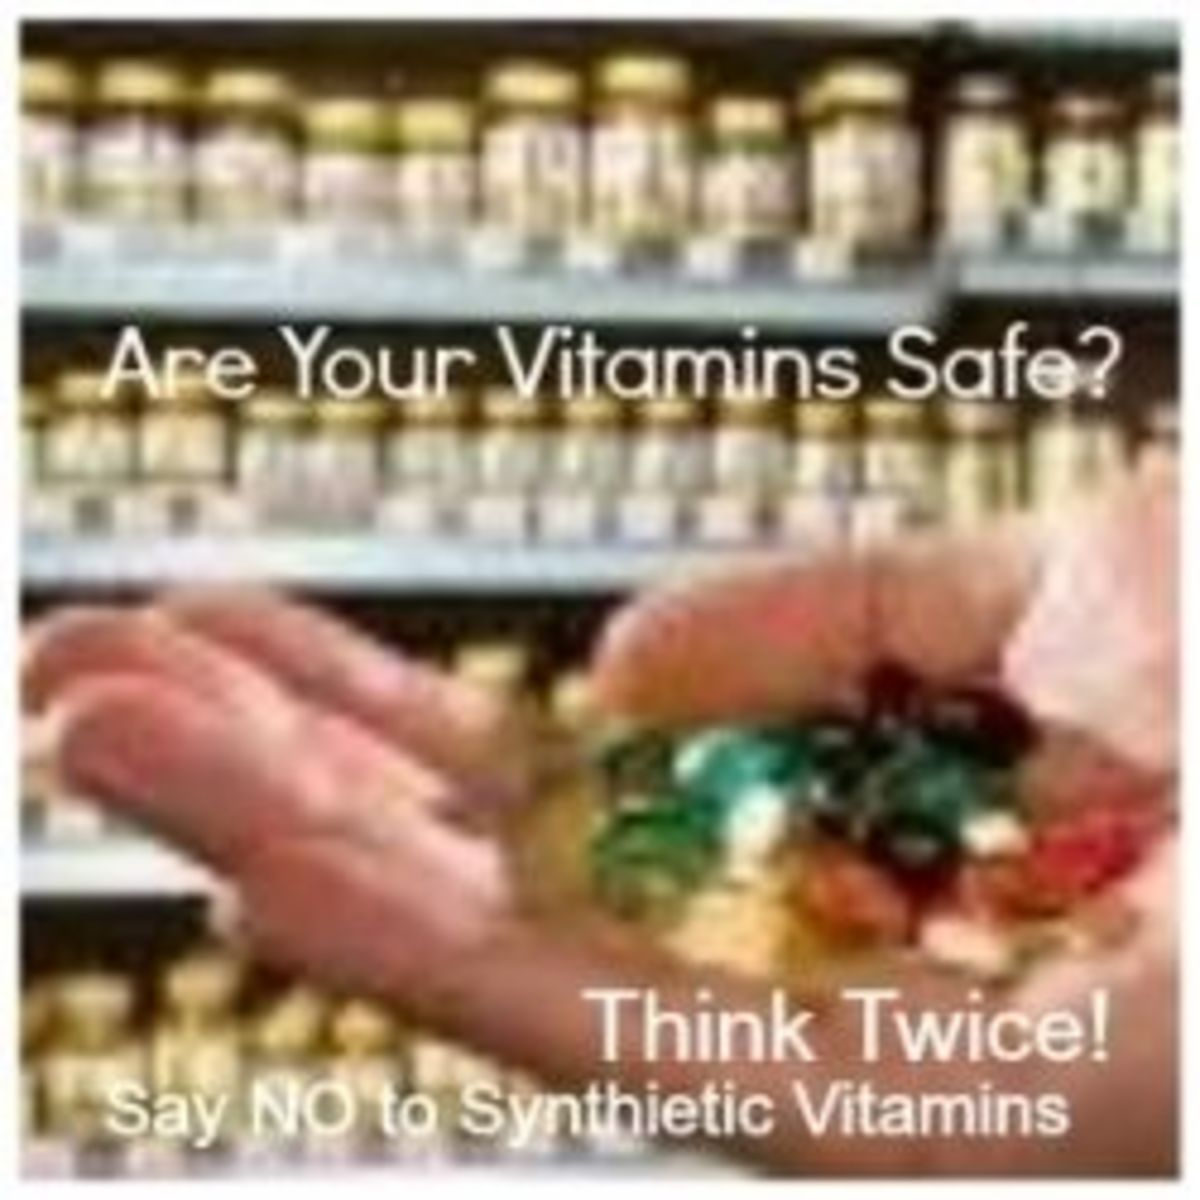 Whole Food Vitamins VS Synthetics